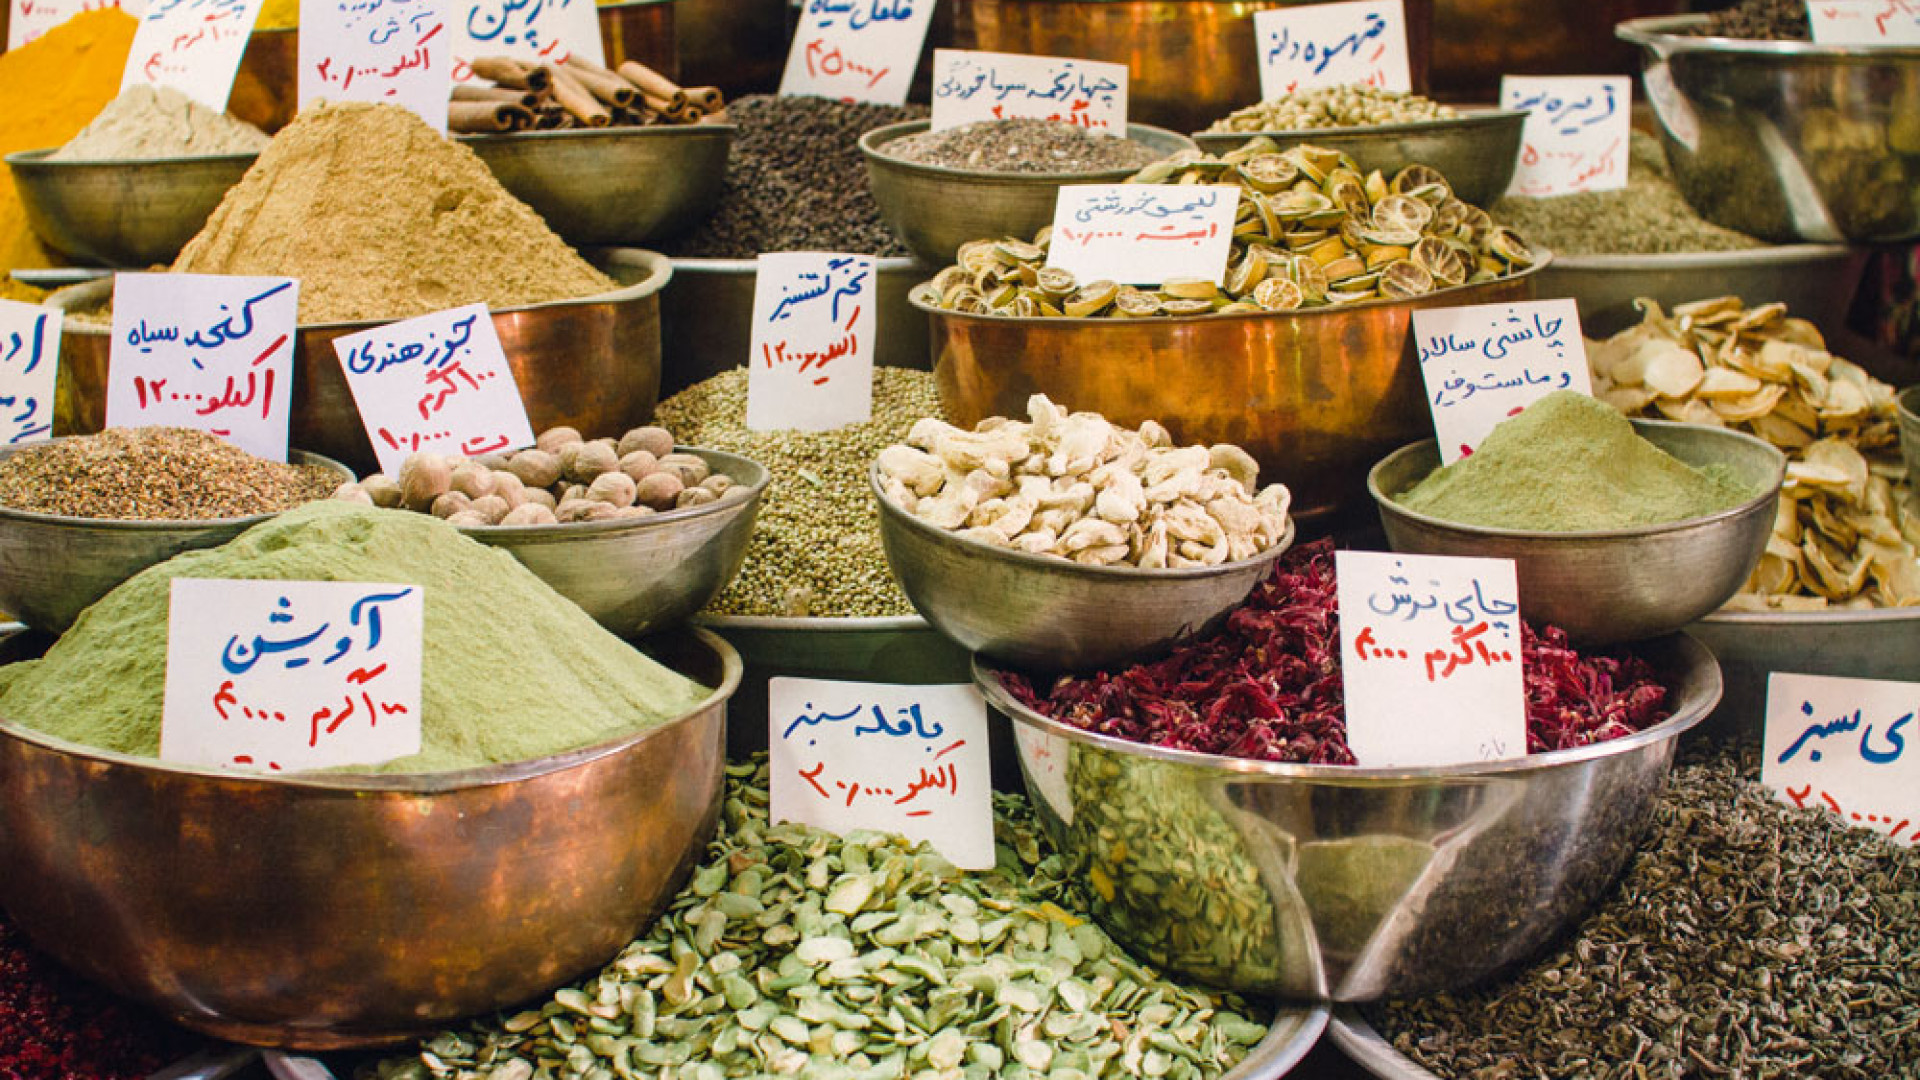 Spices in an Iranian bazaar